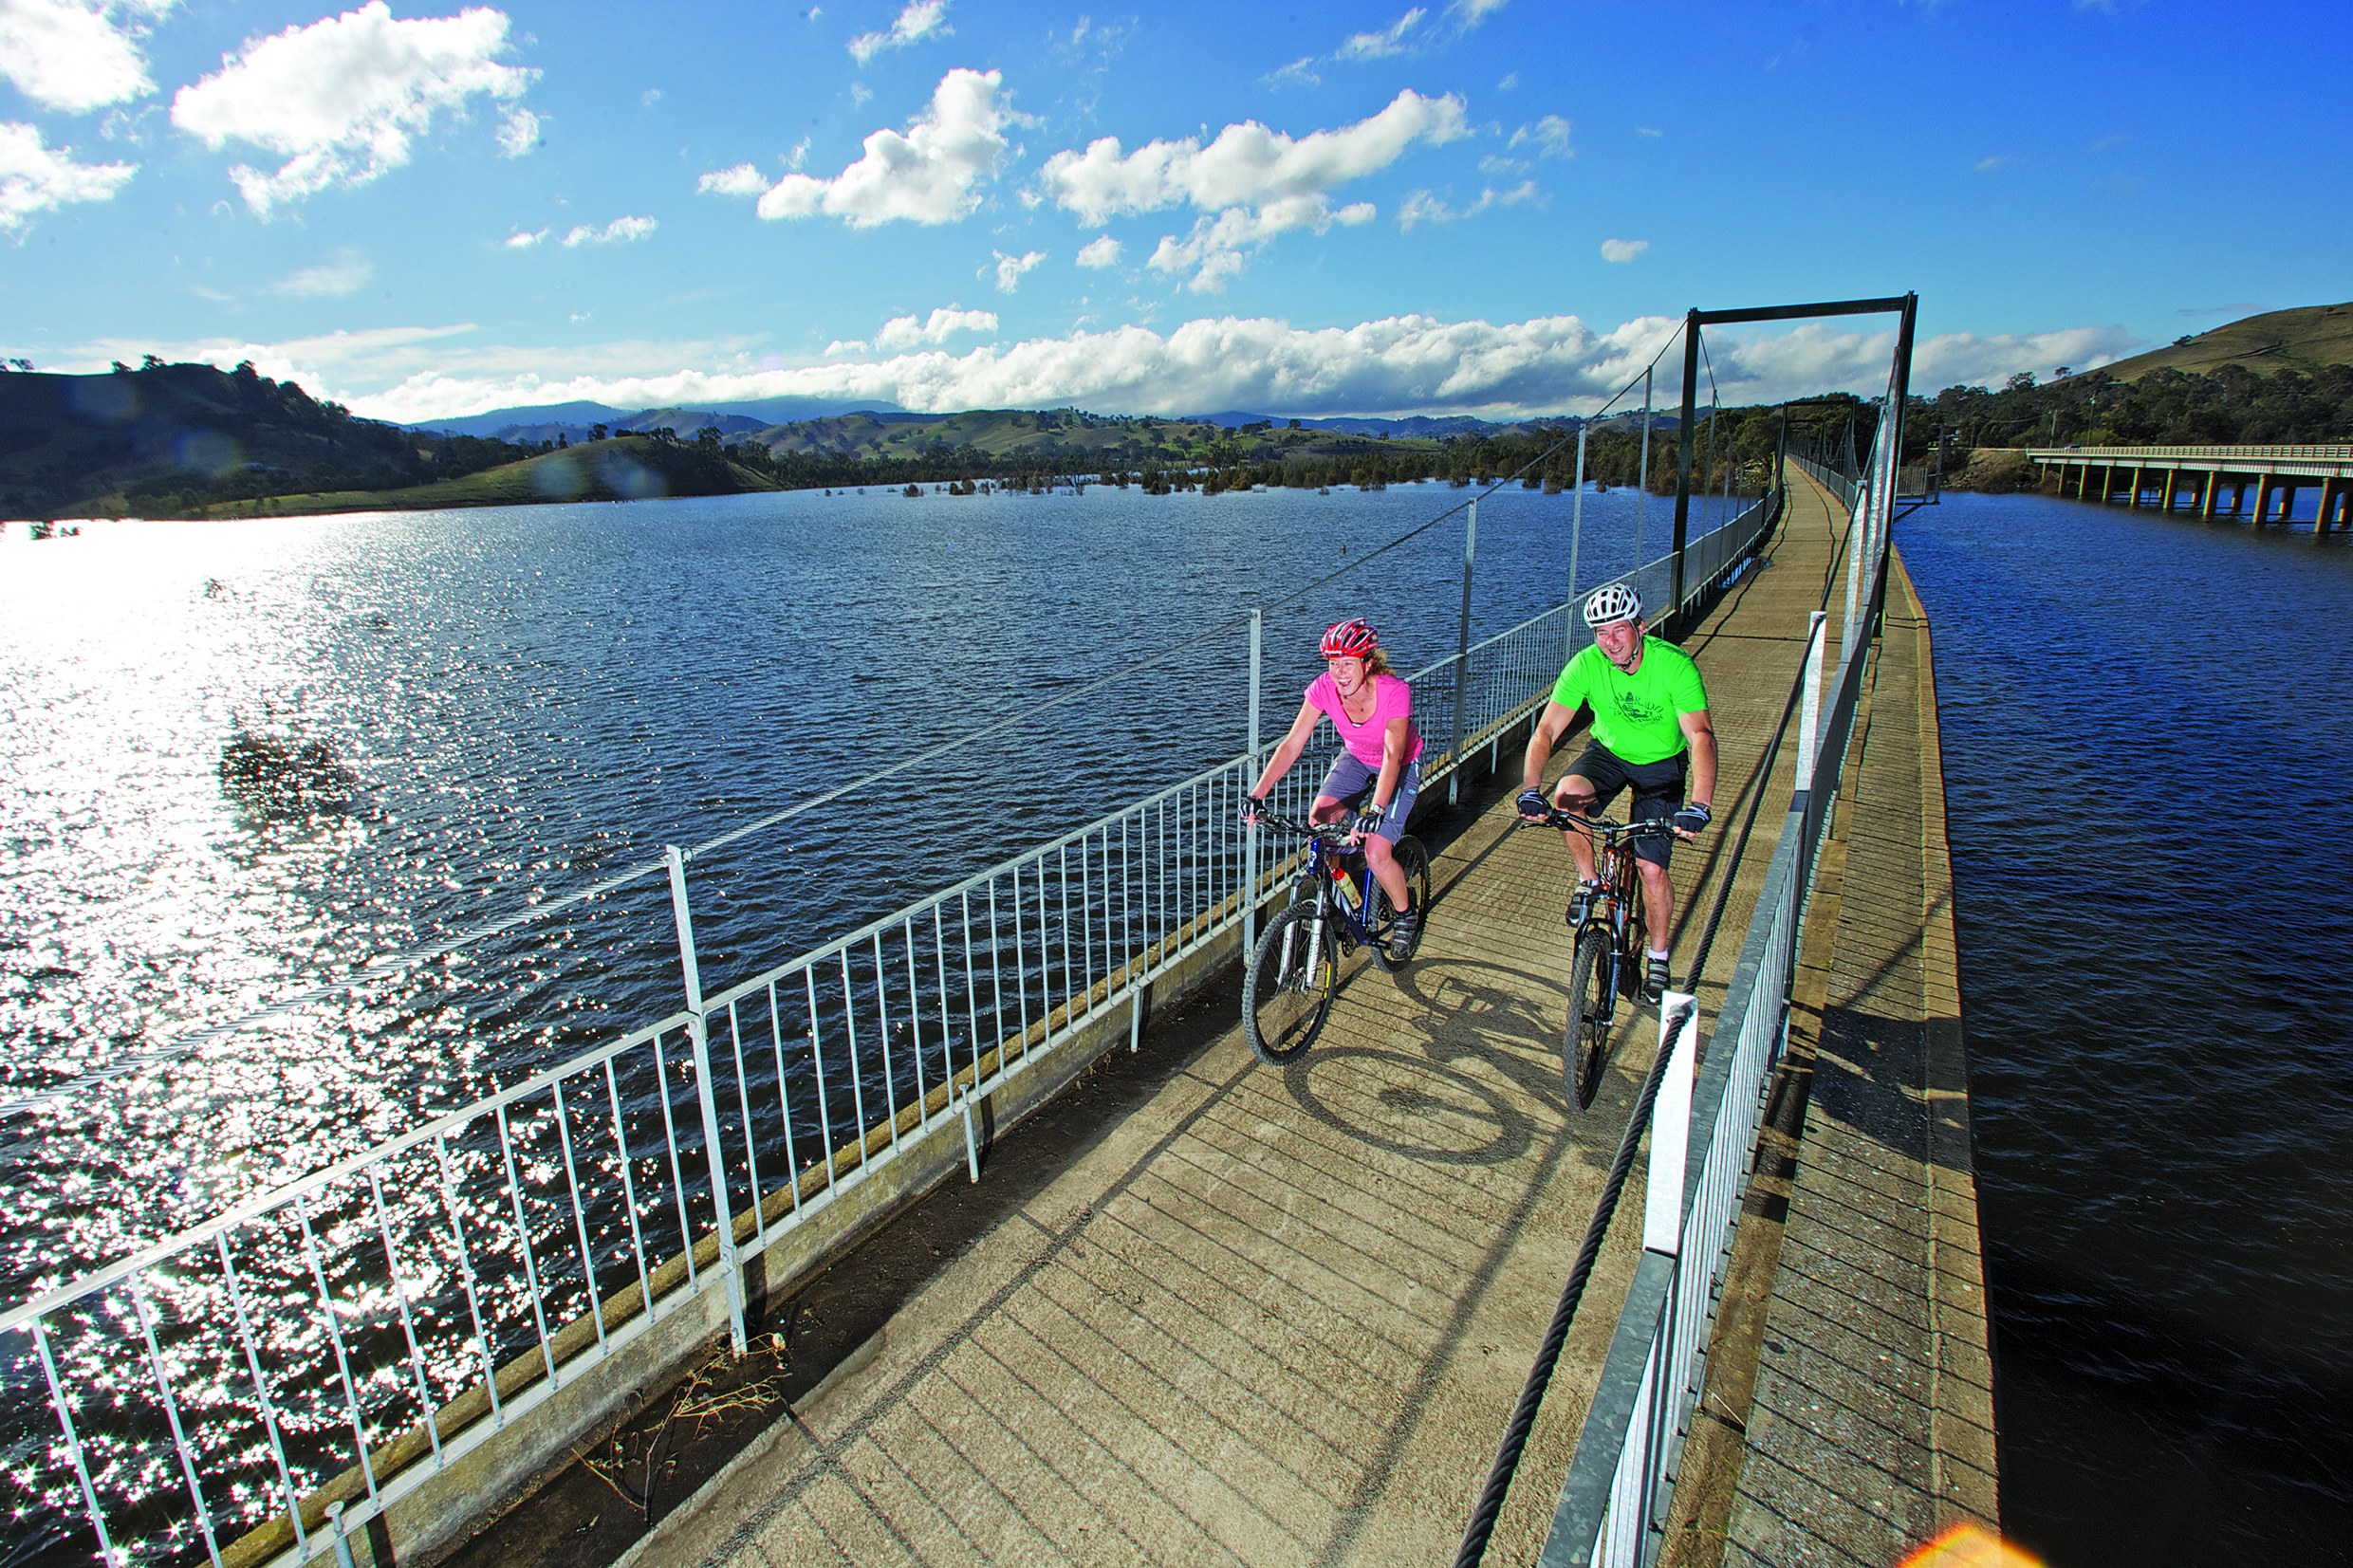 Great_victorian_rail_trail_bonnie_doon_bridge_thumb